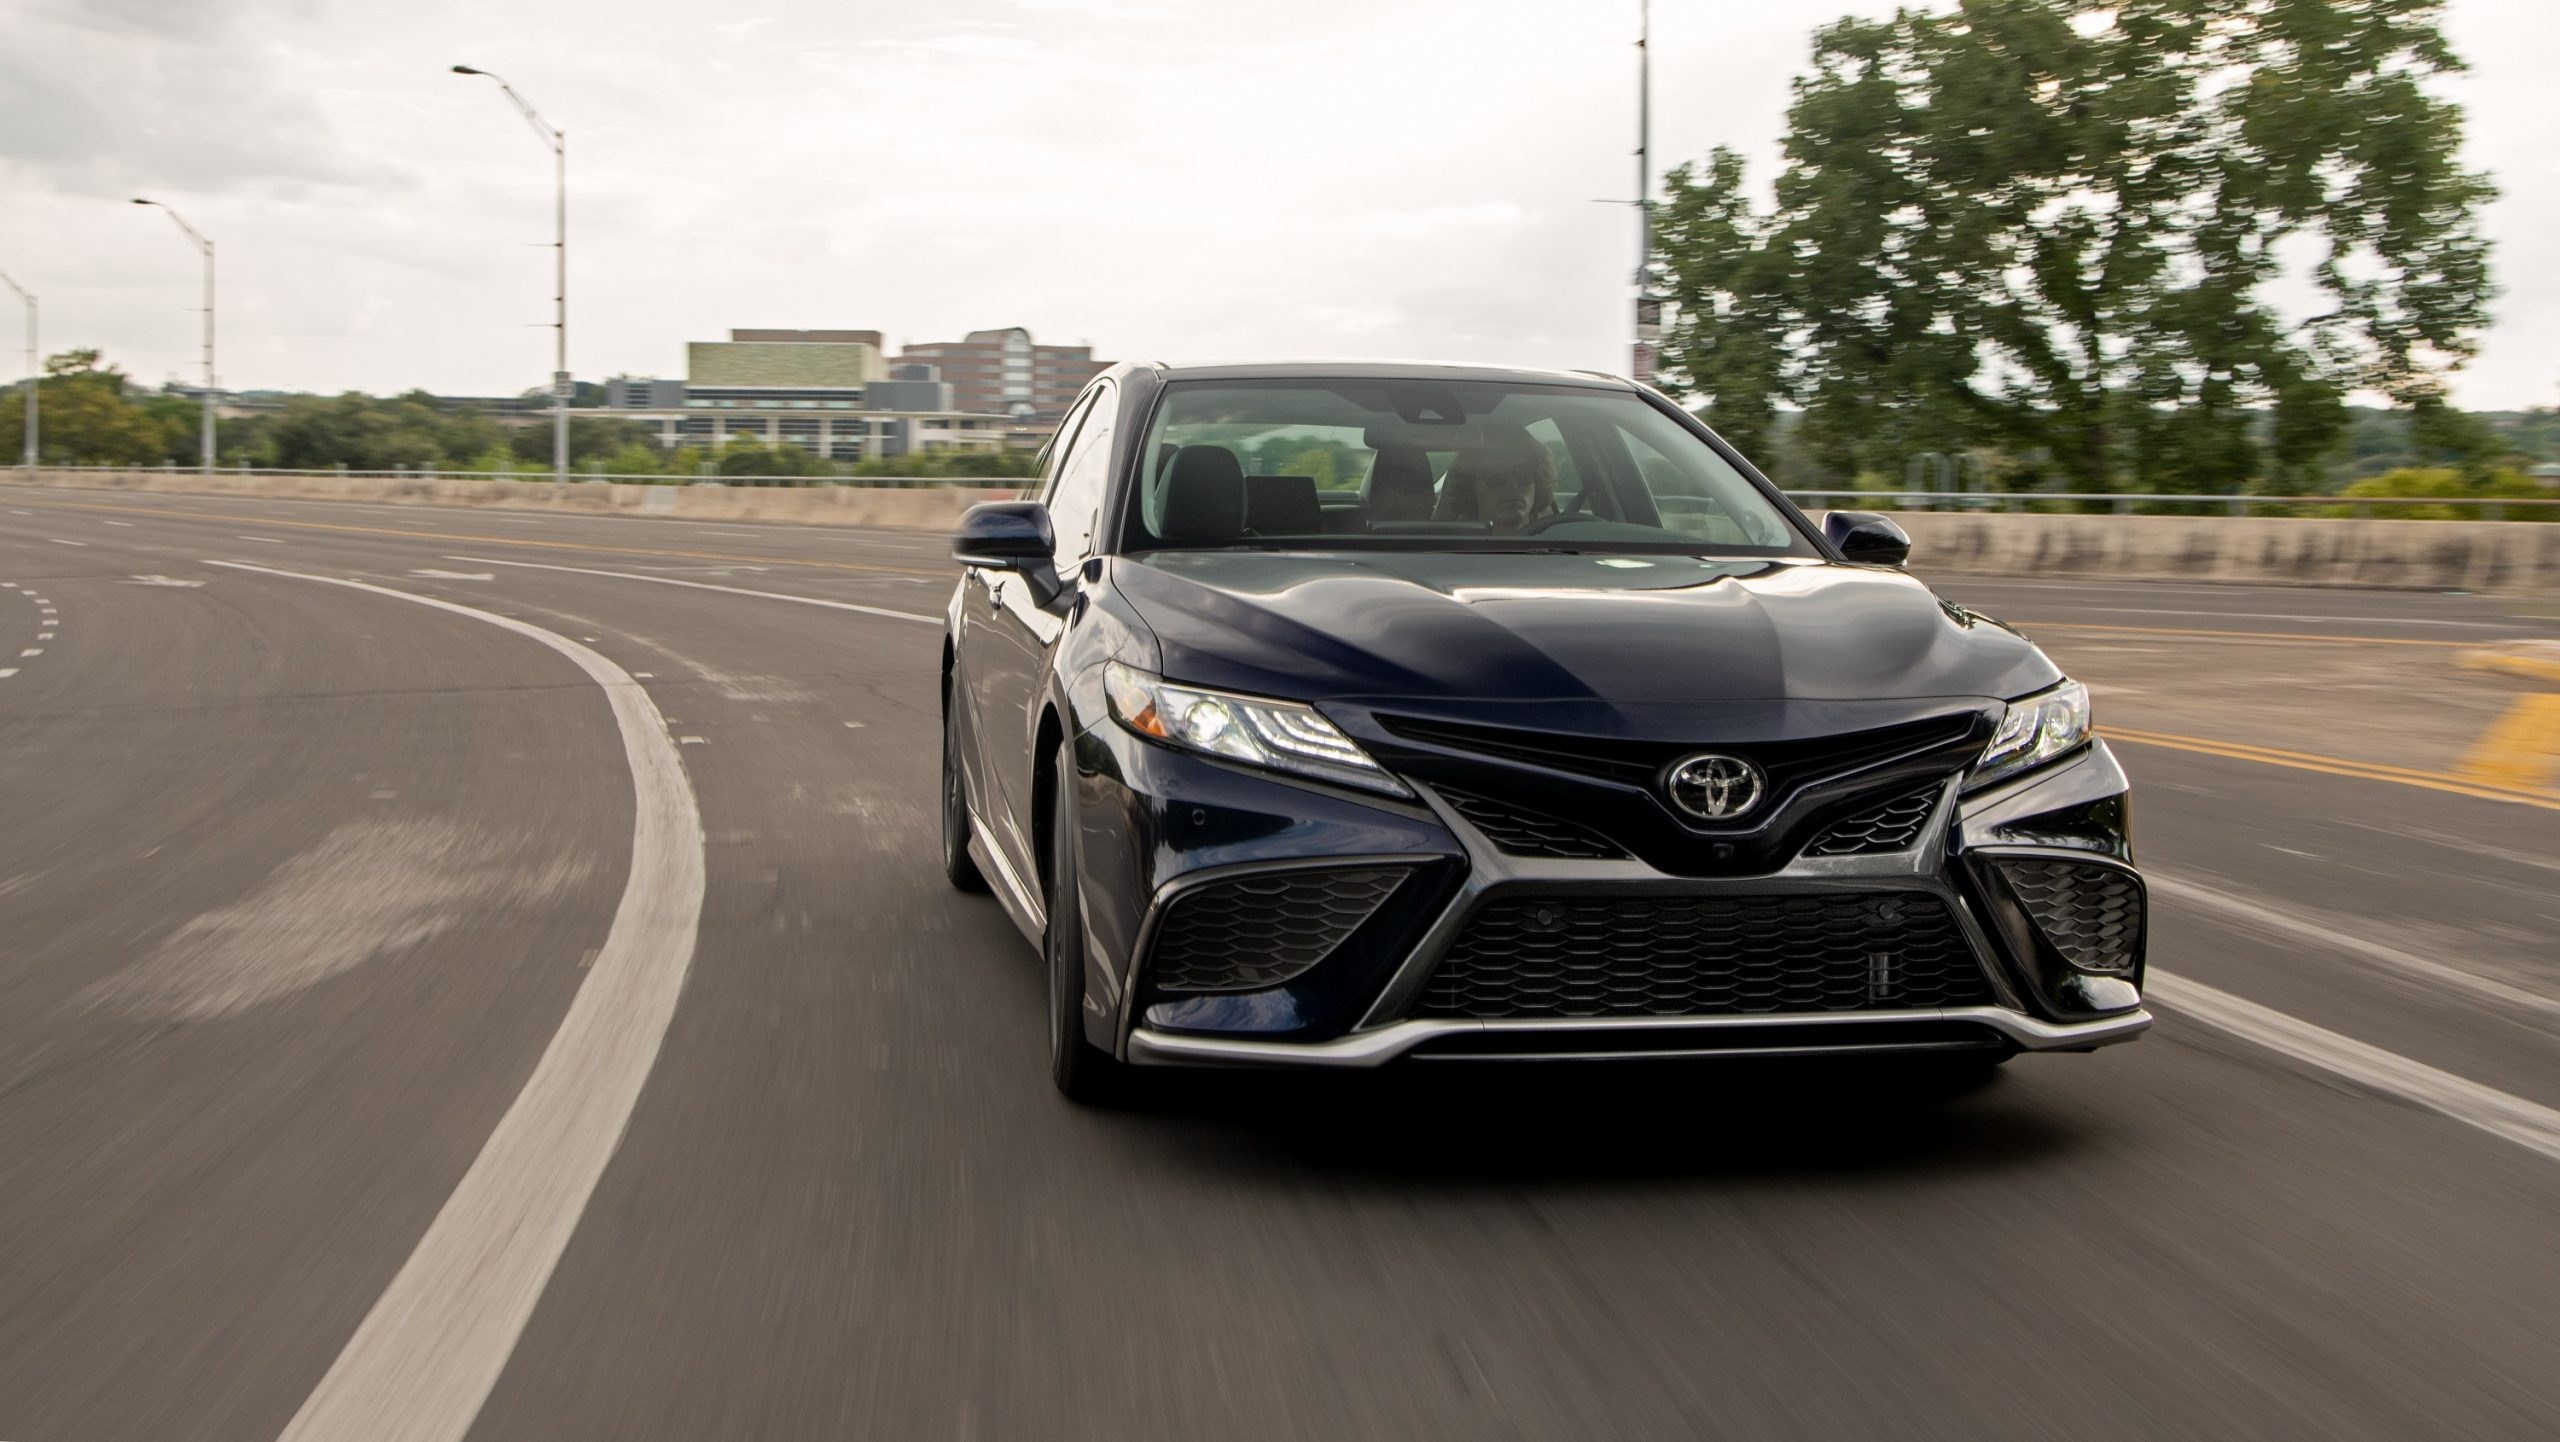 A blue 2022 Toyota Camry XLE shot from the front on a highway